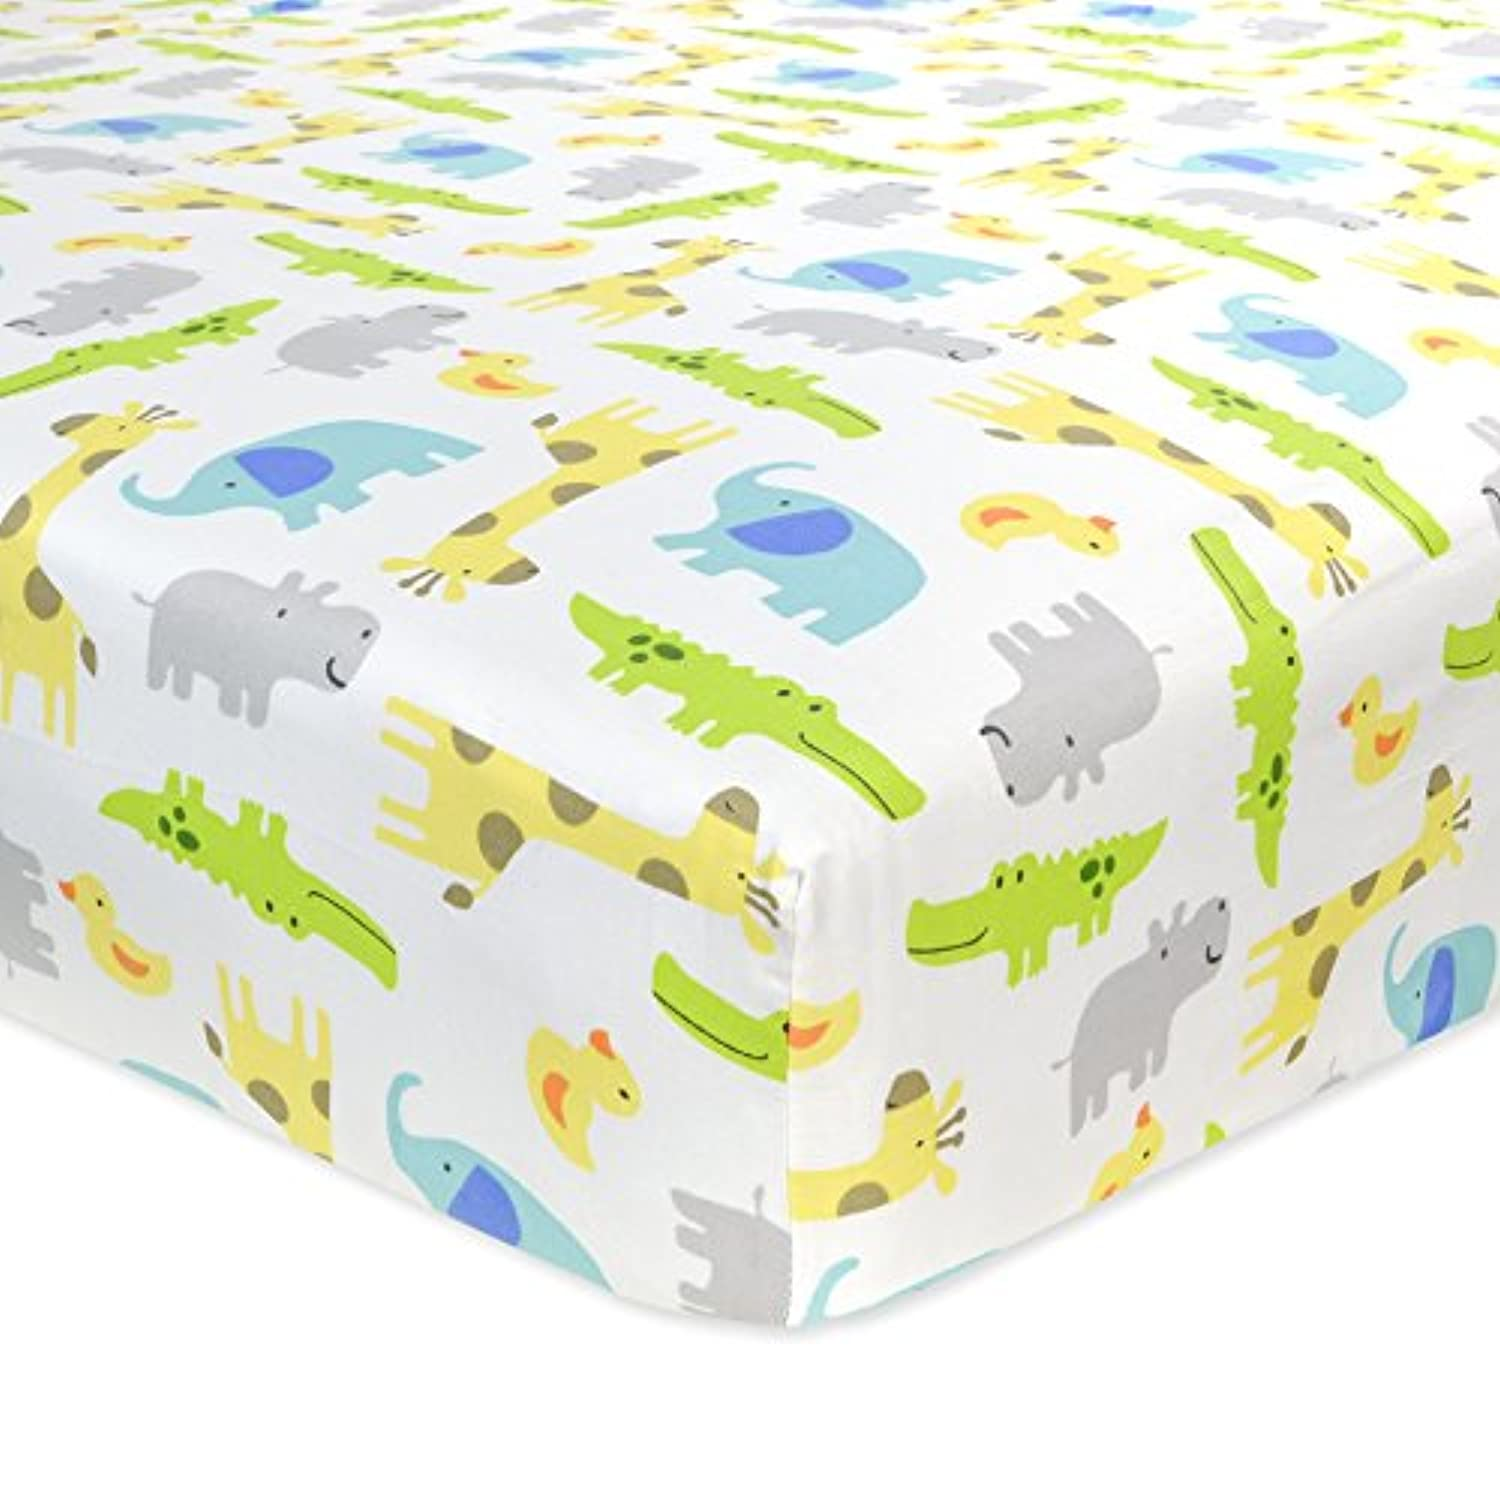 Carter's Cotton Fitted Crib Sheet, Critter/Green/Yellow/Grey/White by Carter's